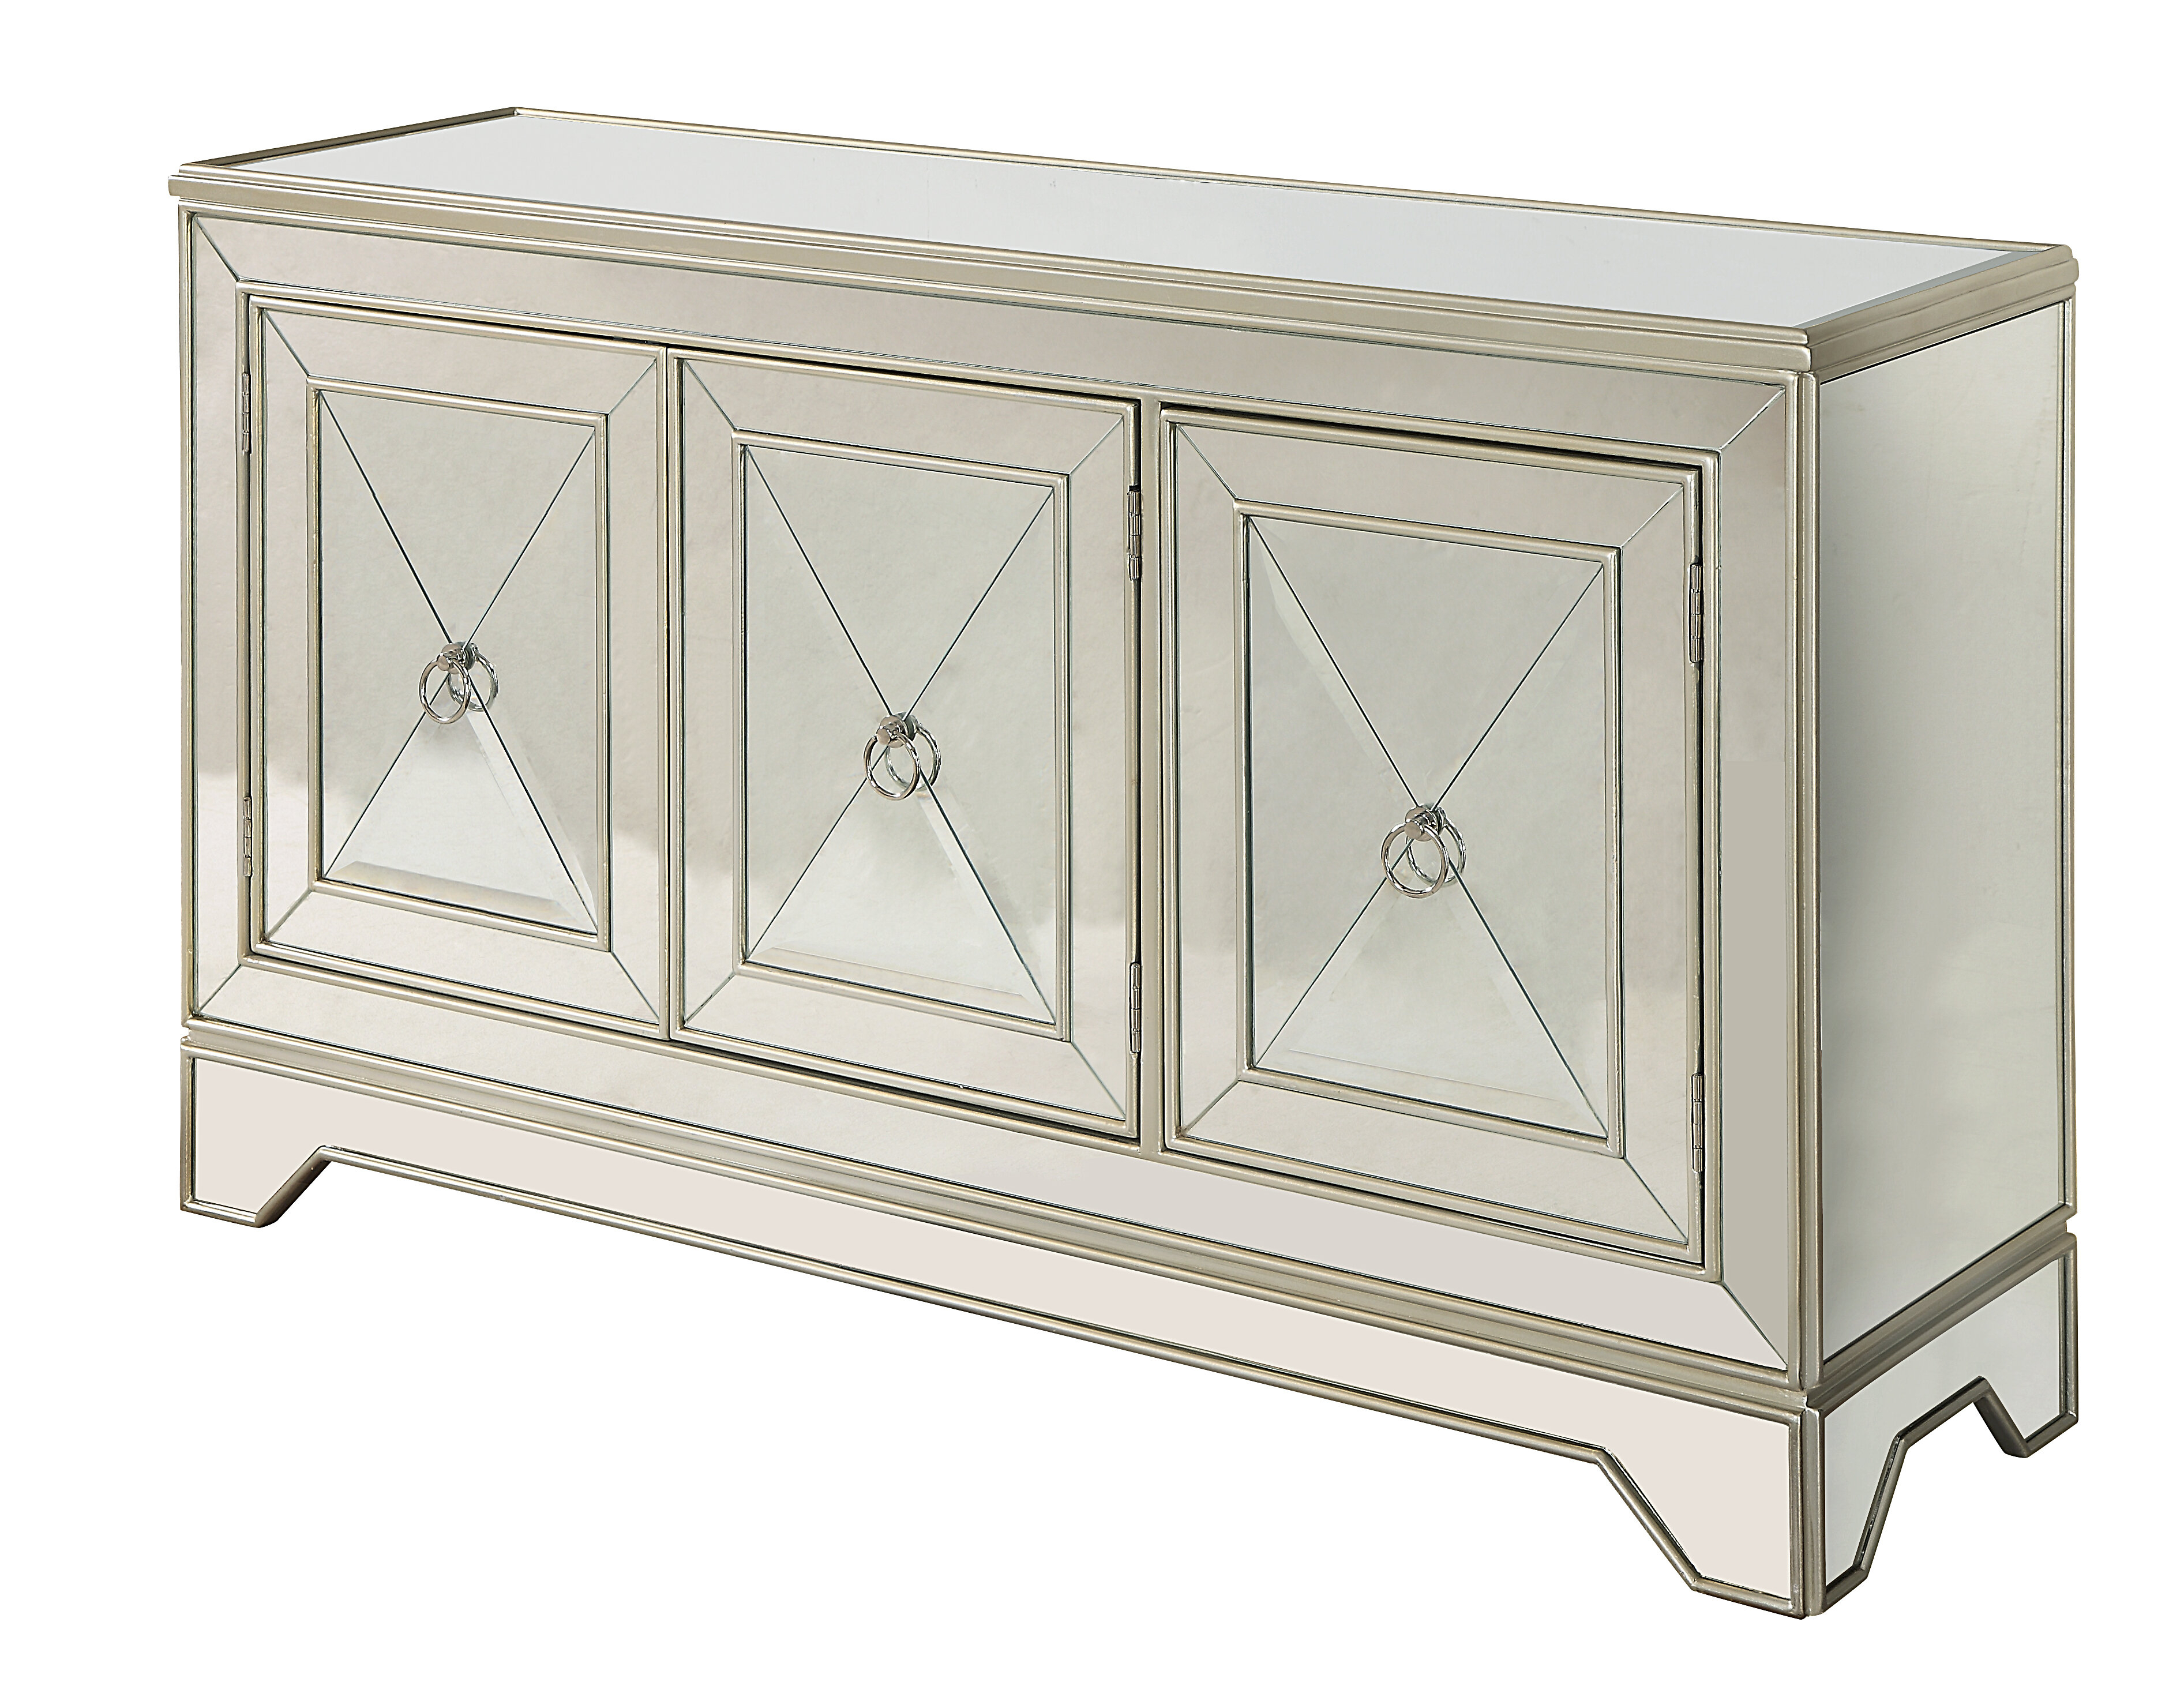 Keeney Sideboard with regard to Papadopoulos Sideboards (Image 15 of 30)